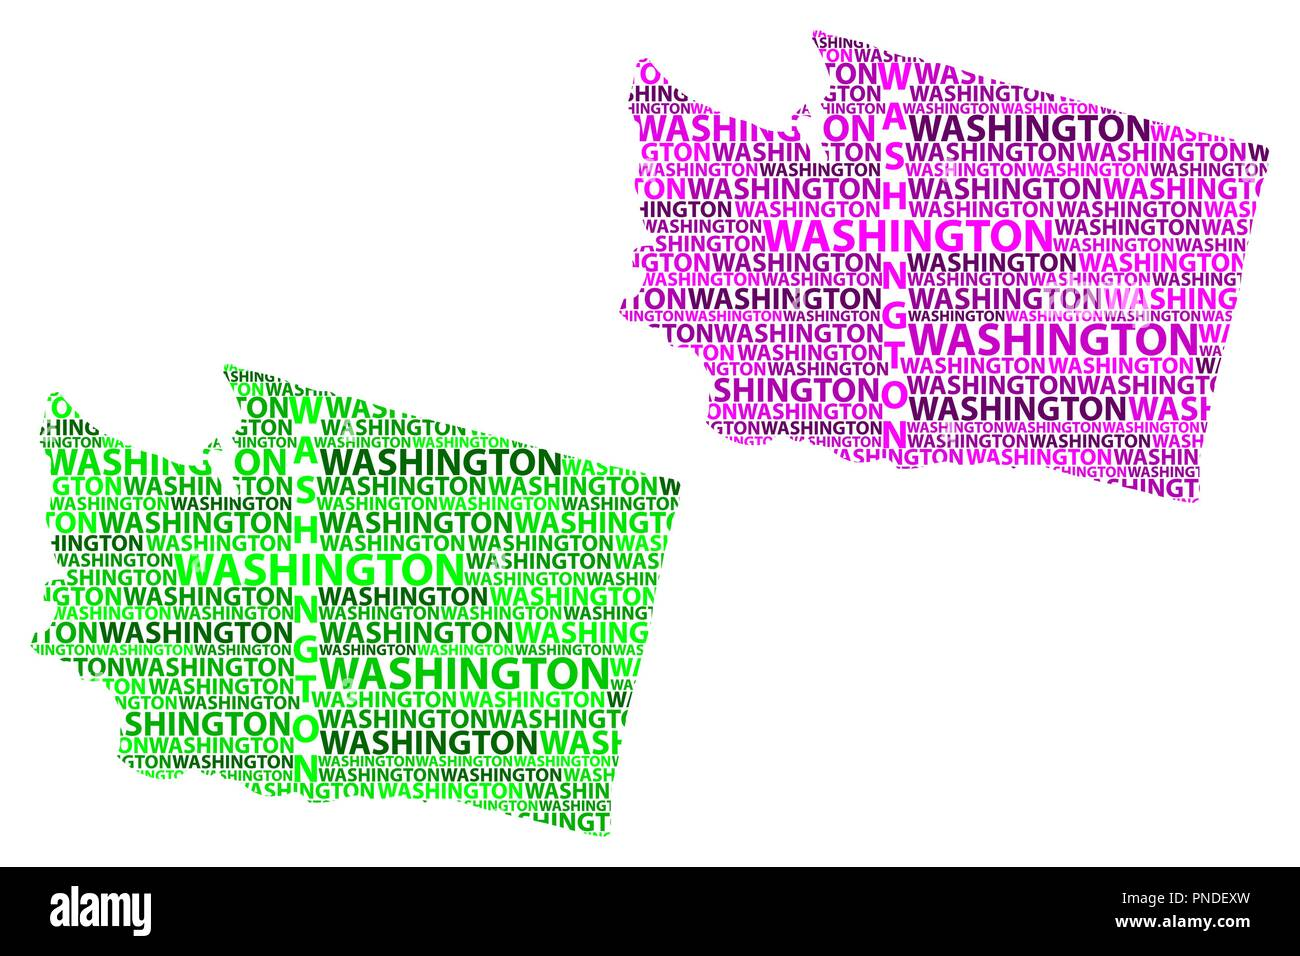 Sketch Washington (state) (United States of America) letter text map, Washington (state) map - in the shape of the continent, Map State of Washington  - Stock Vector